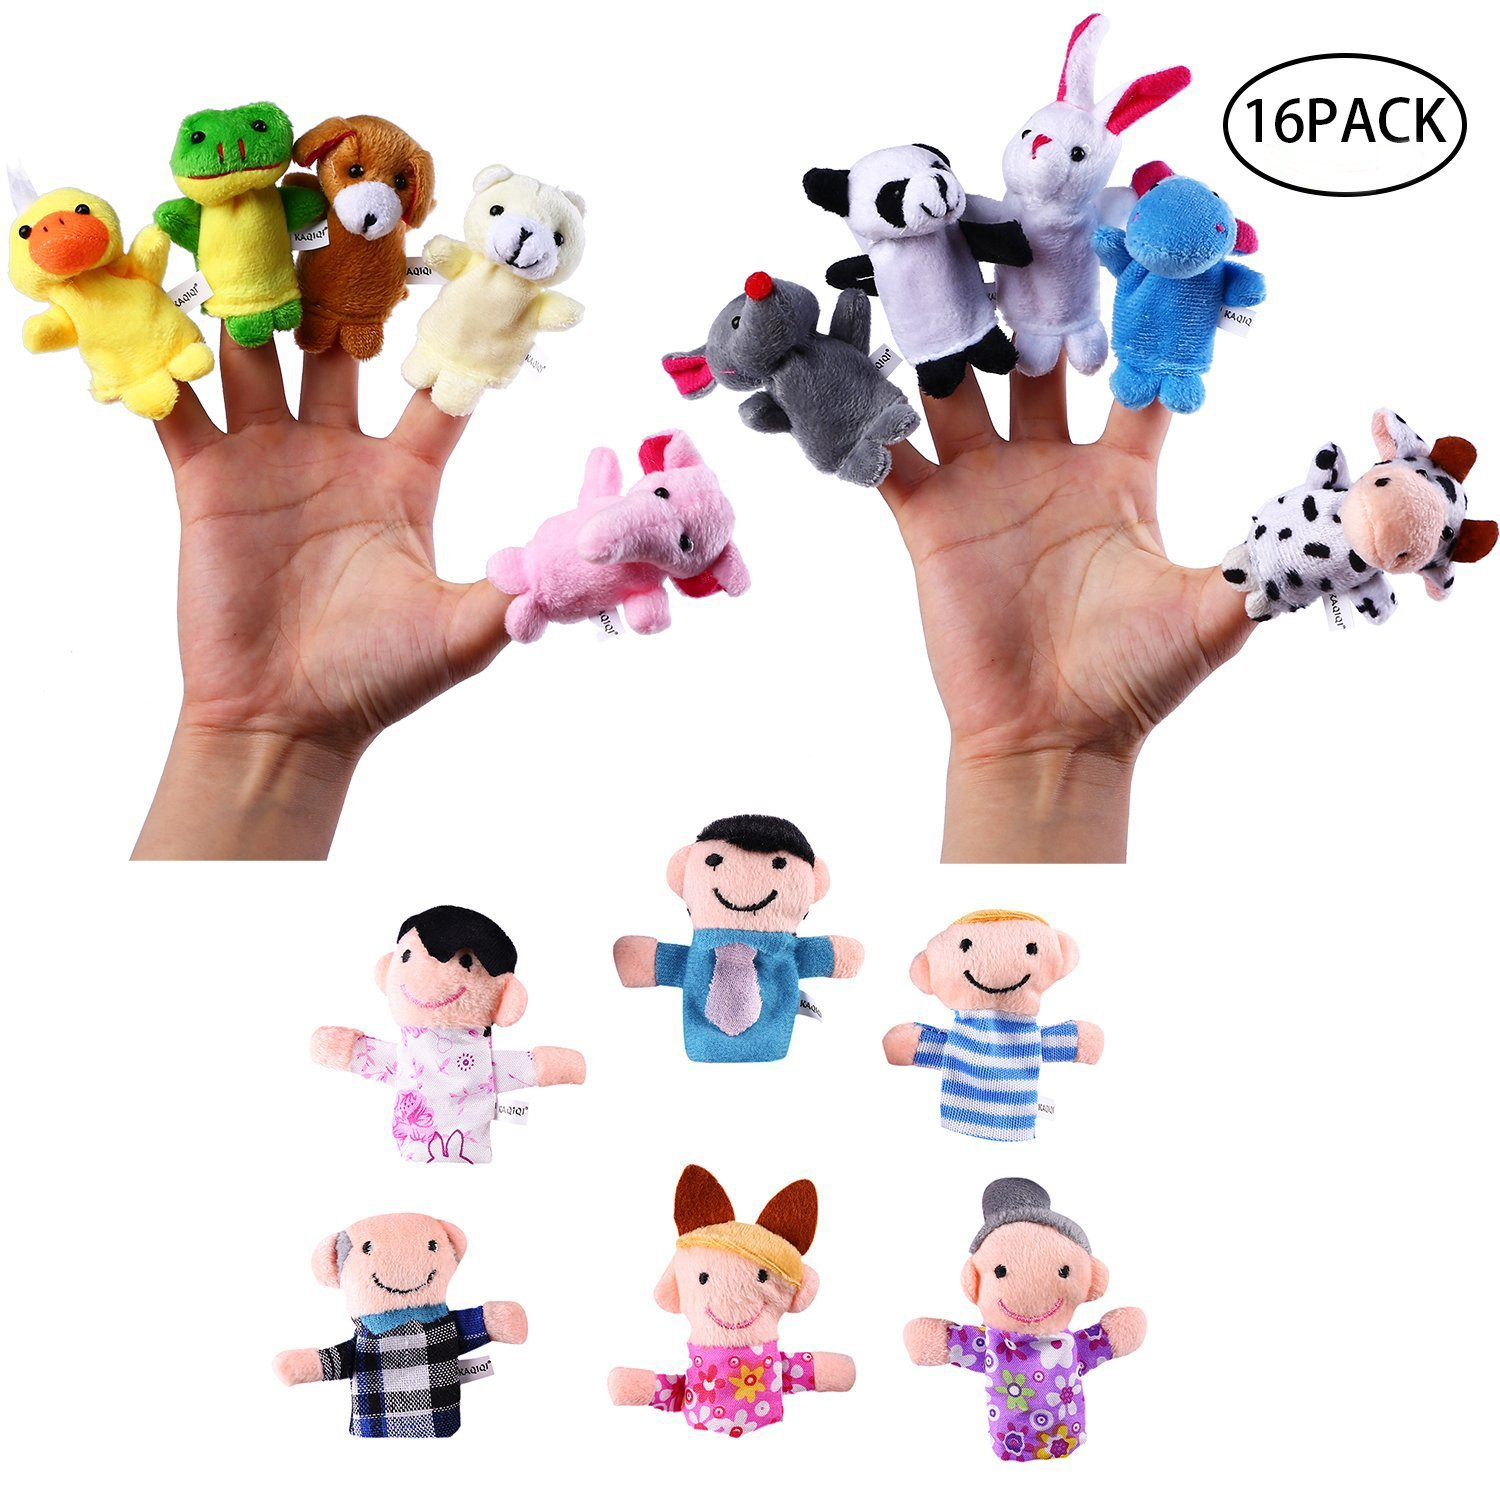 Finger Puppets Set,Velvet Soft Plush Animal People Finger Puppets, Soft Little Cartoon Plush Doll Toys for Kids toddlers Story Time Pre-School Education for Teaching Bible Story time Pack of 16 Jinhua Yiyan